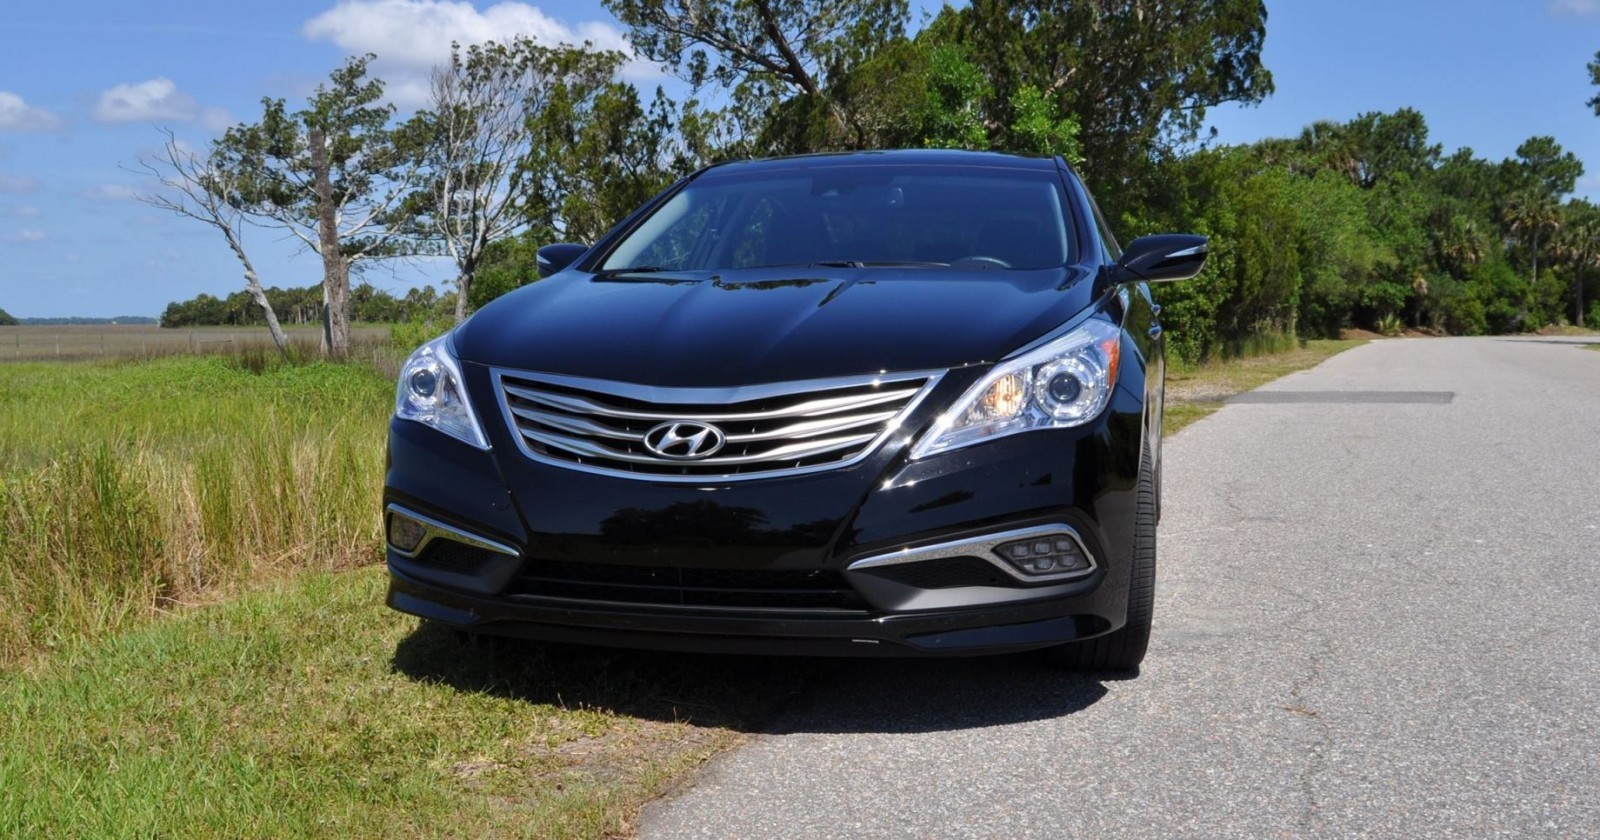 Road Test Review - 2015 Hyundai AZERA Limited 153